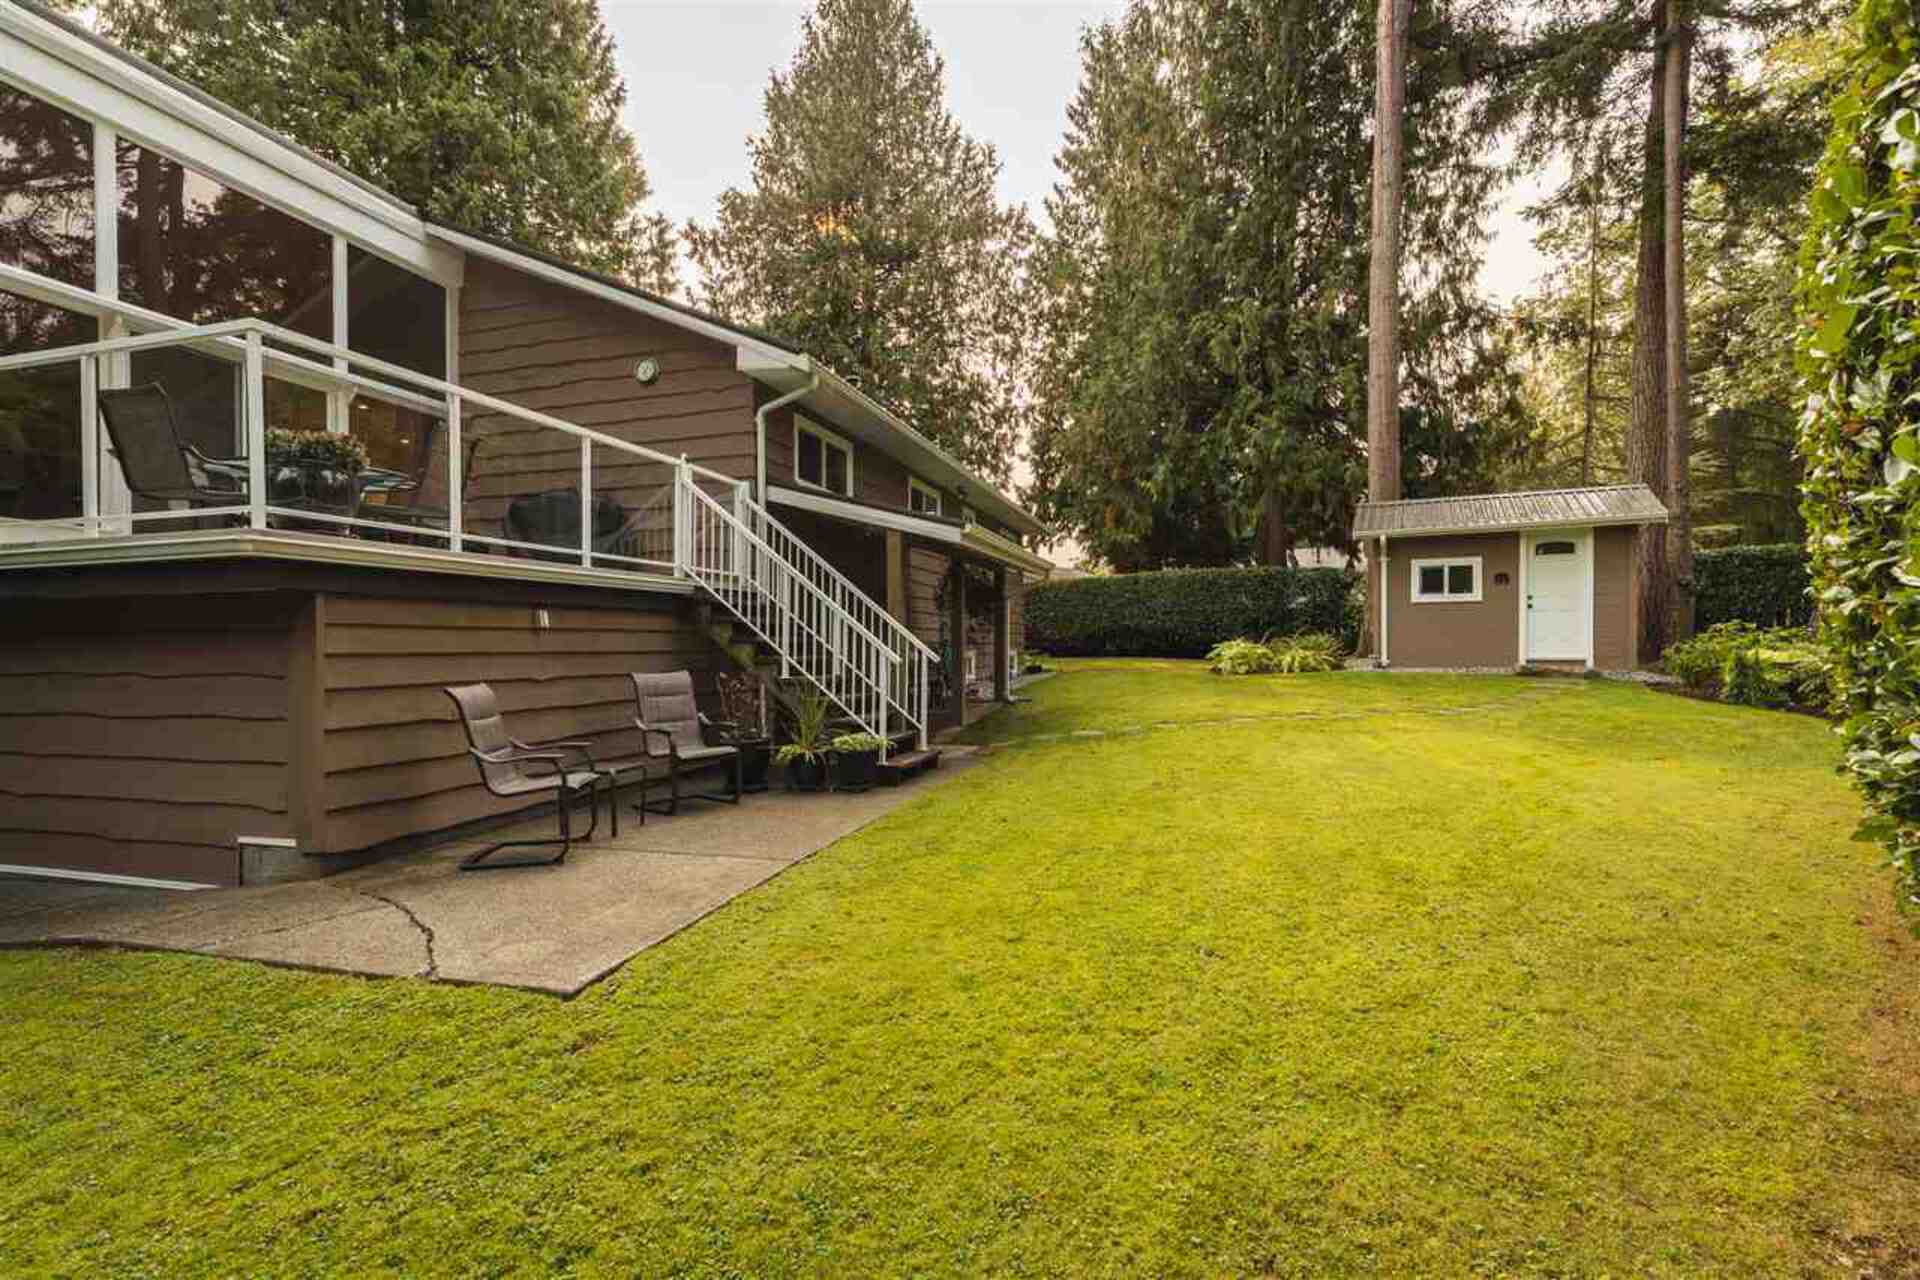 4528-southridge-crescent-murrayville-langley-34 at 4528 Southridge Crescent, Murrayville, Langley